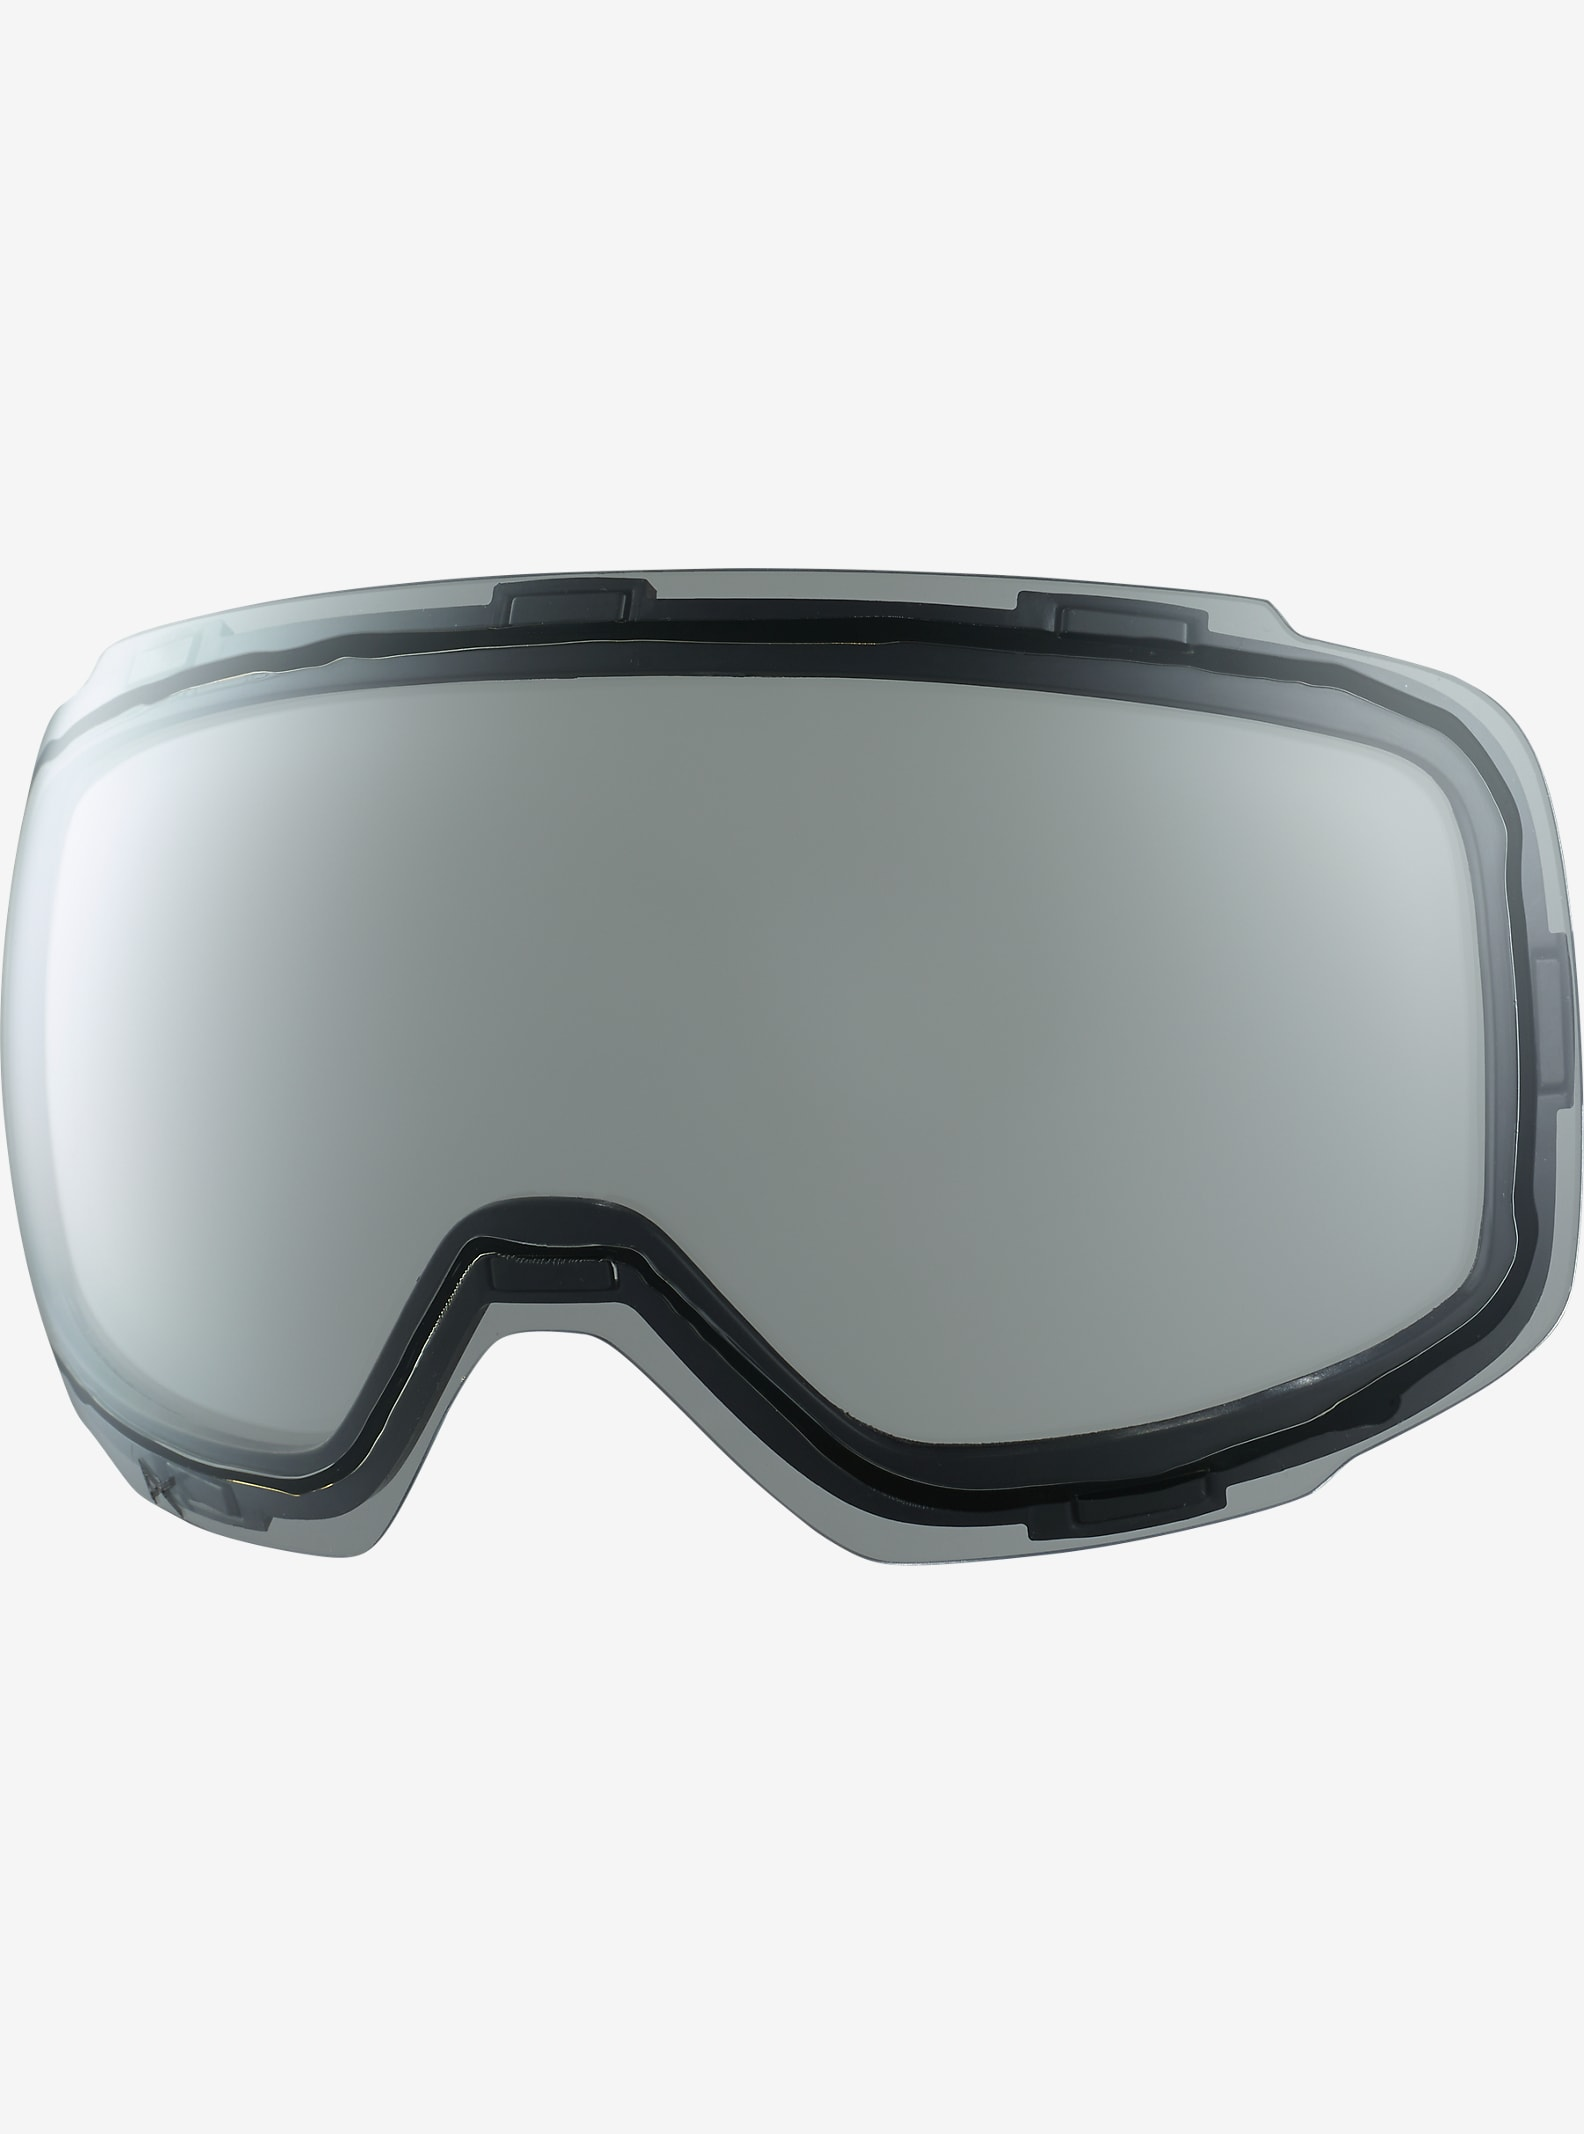 anon. M2 Goggle Lens shown in Clear (85% VLT)